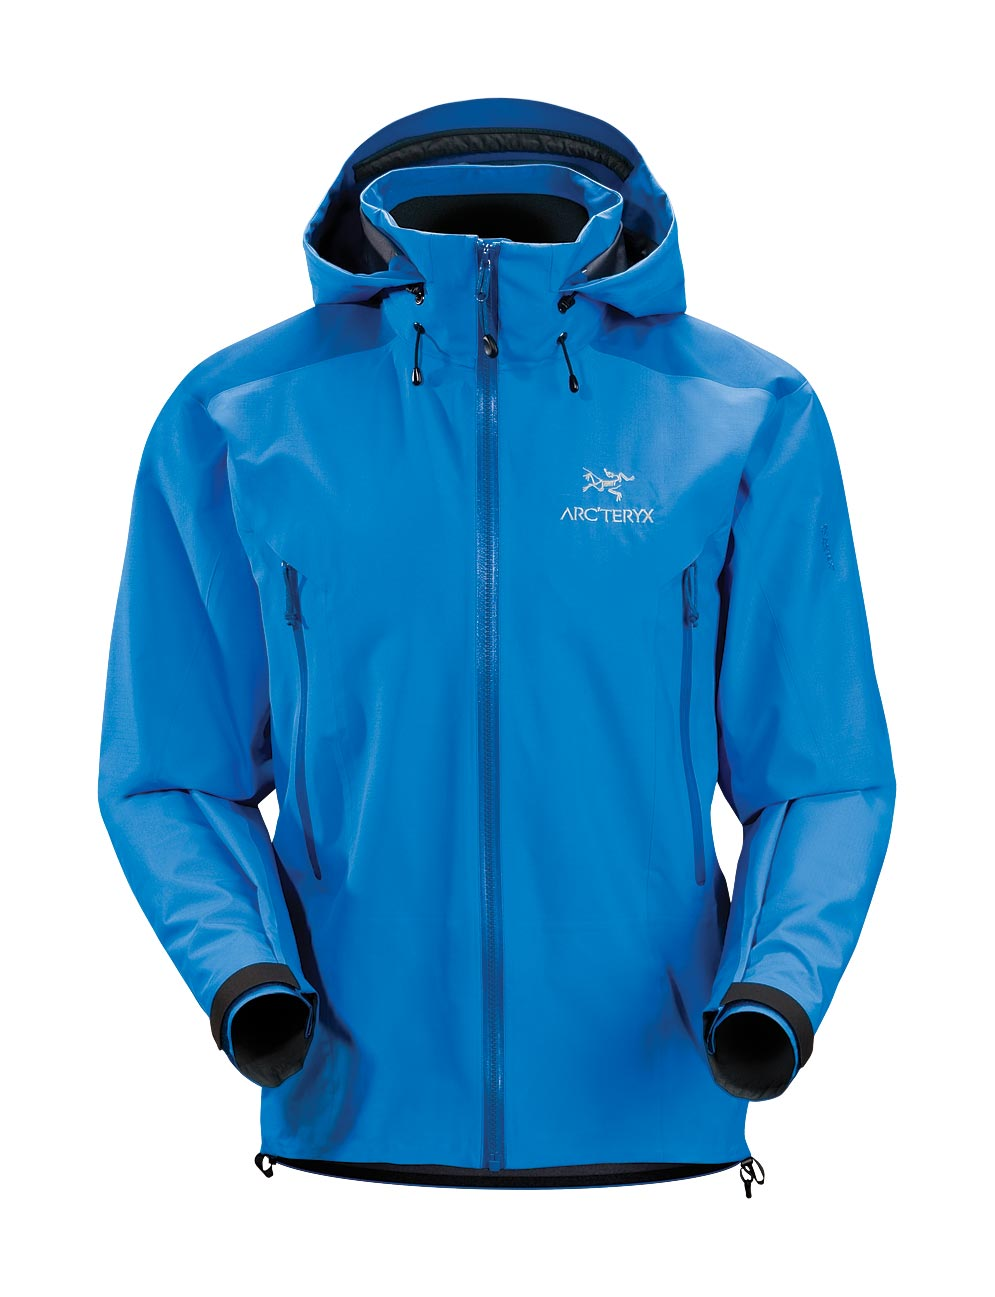 Arcteryx Big Sky Beta AR Jacket